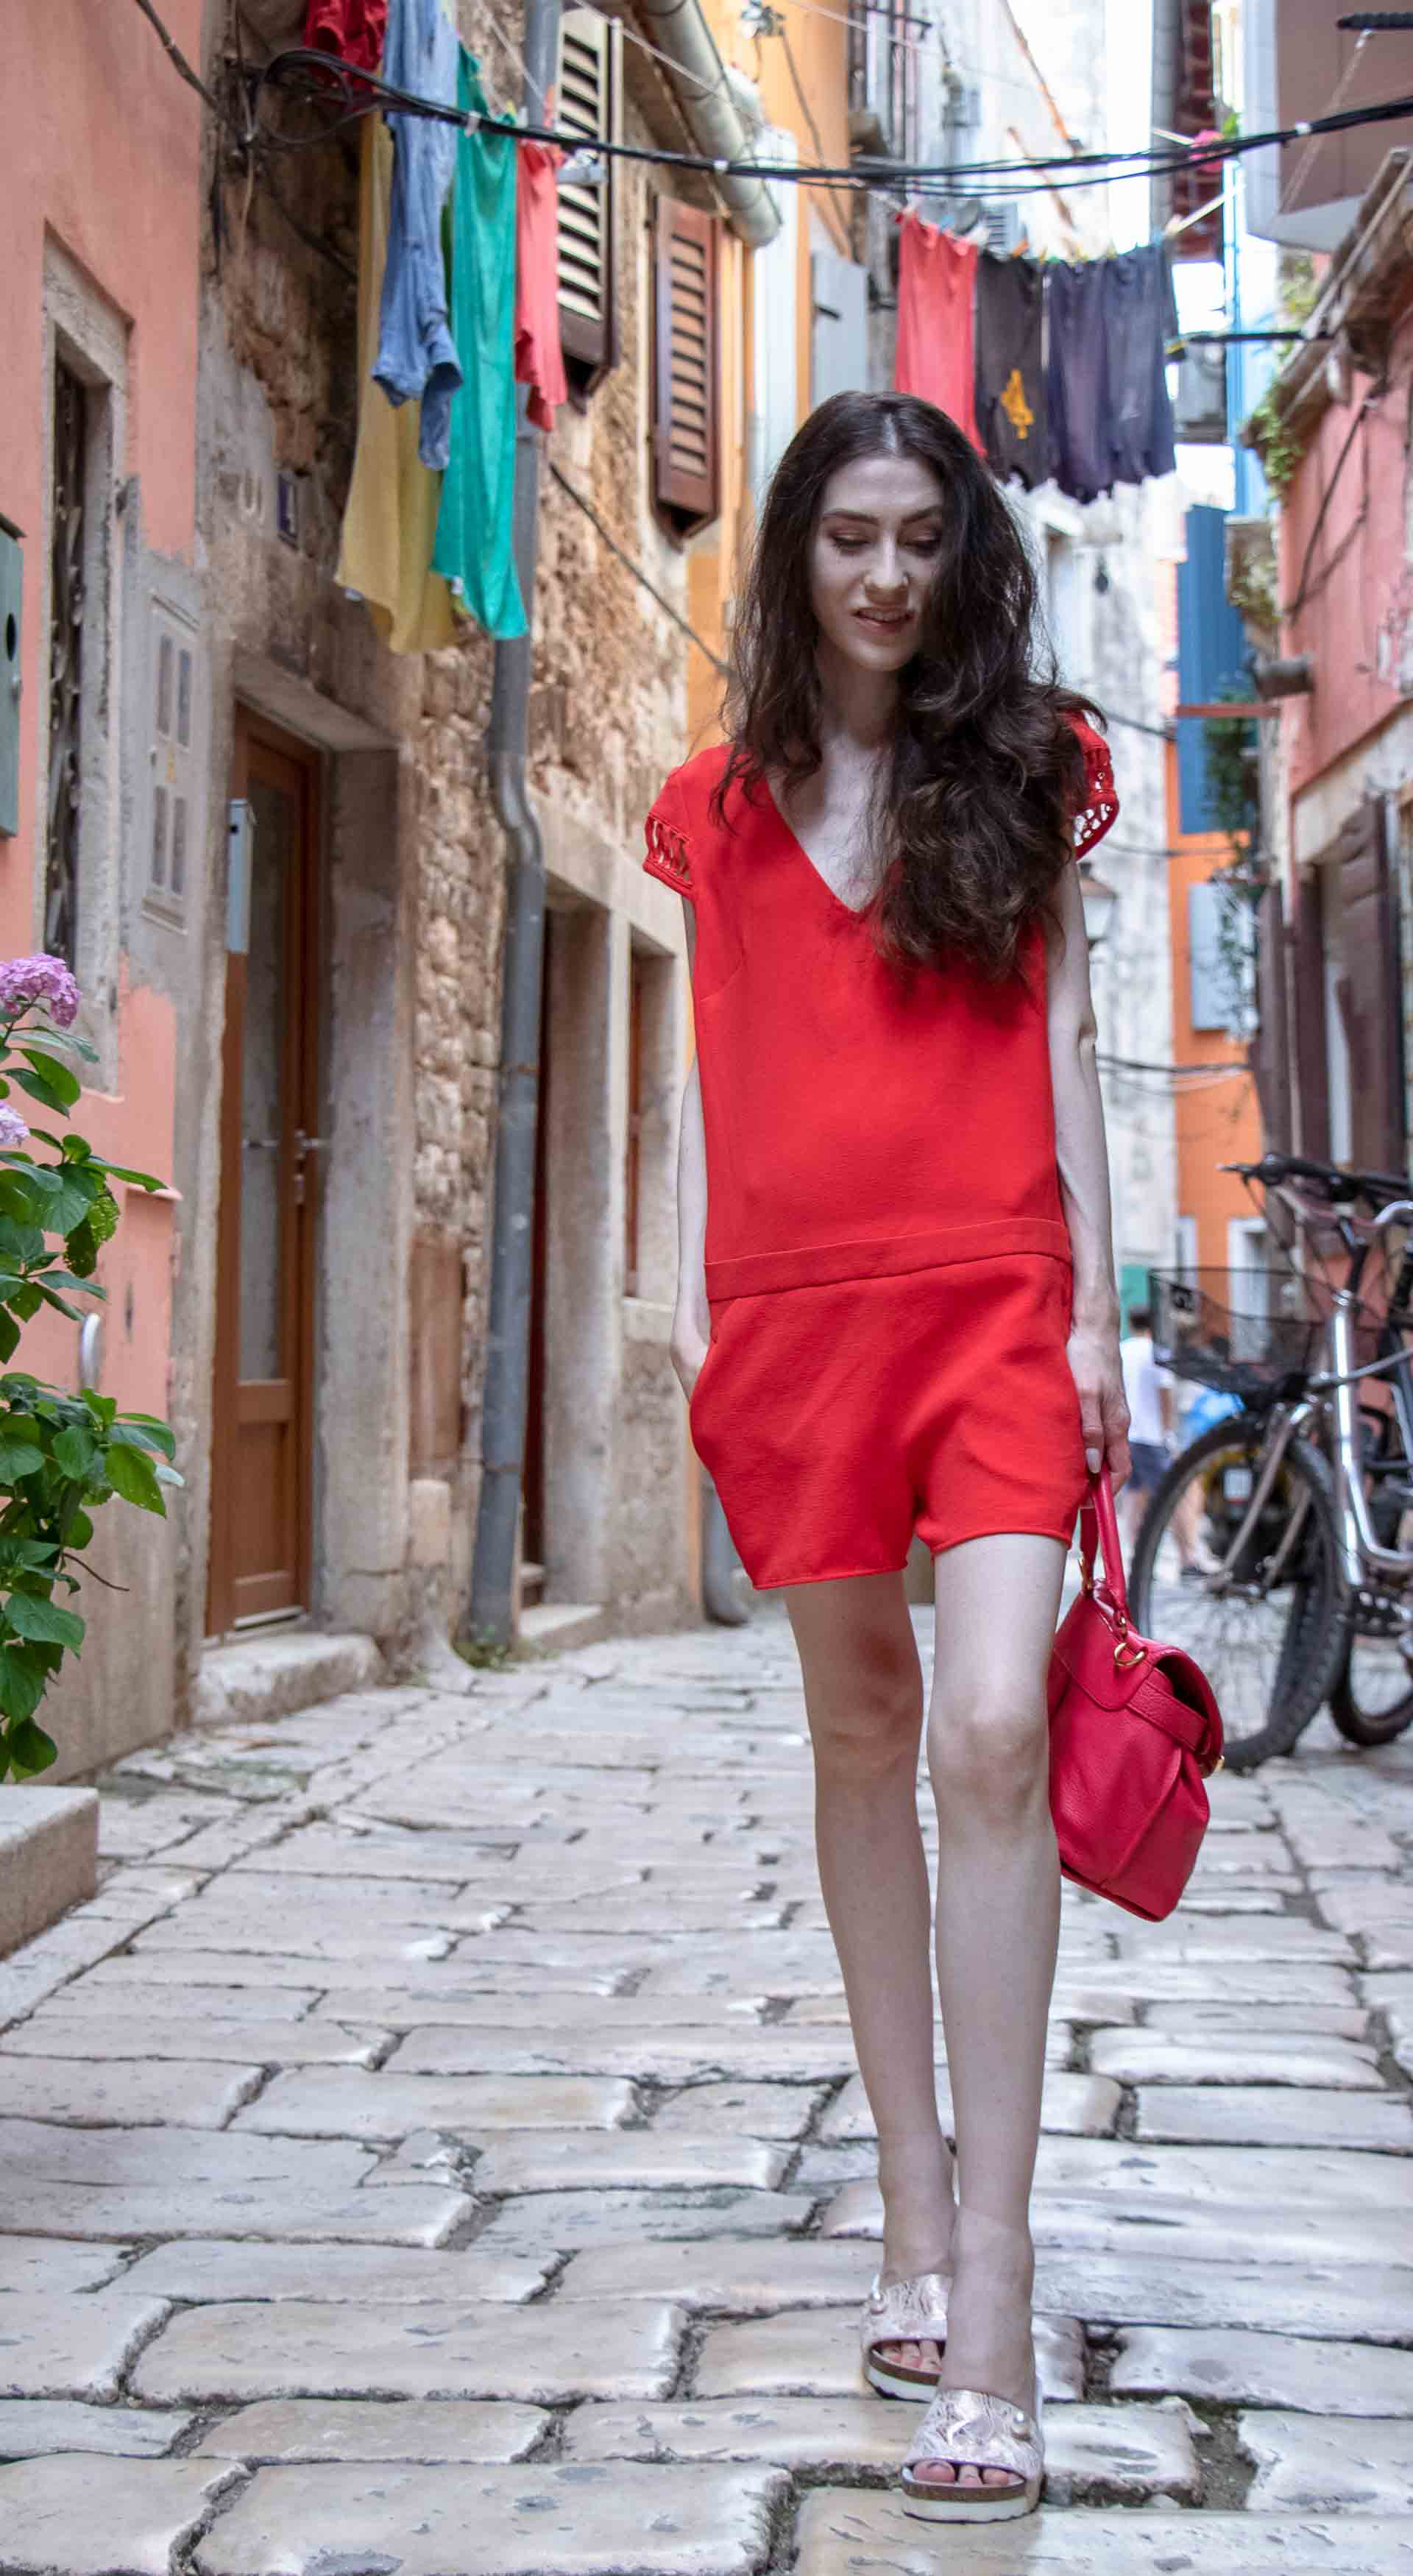 Fashion Blogger Veronika Lipar of Brunette from Wall Street dressed in open back chic red romper, crystal-embellished lace luxe pool slides, pink top handle bag while walking down the narrow picturesque street in Rovinj